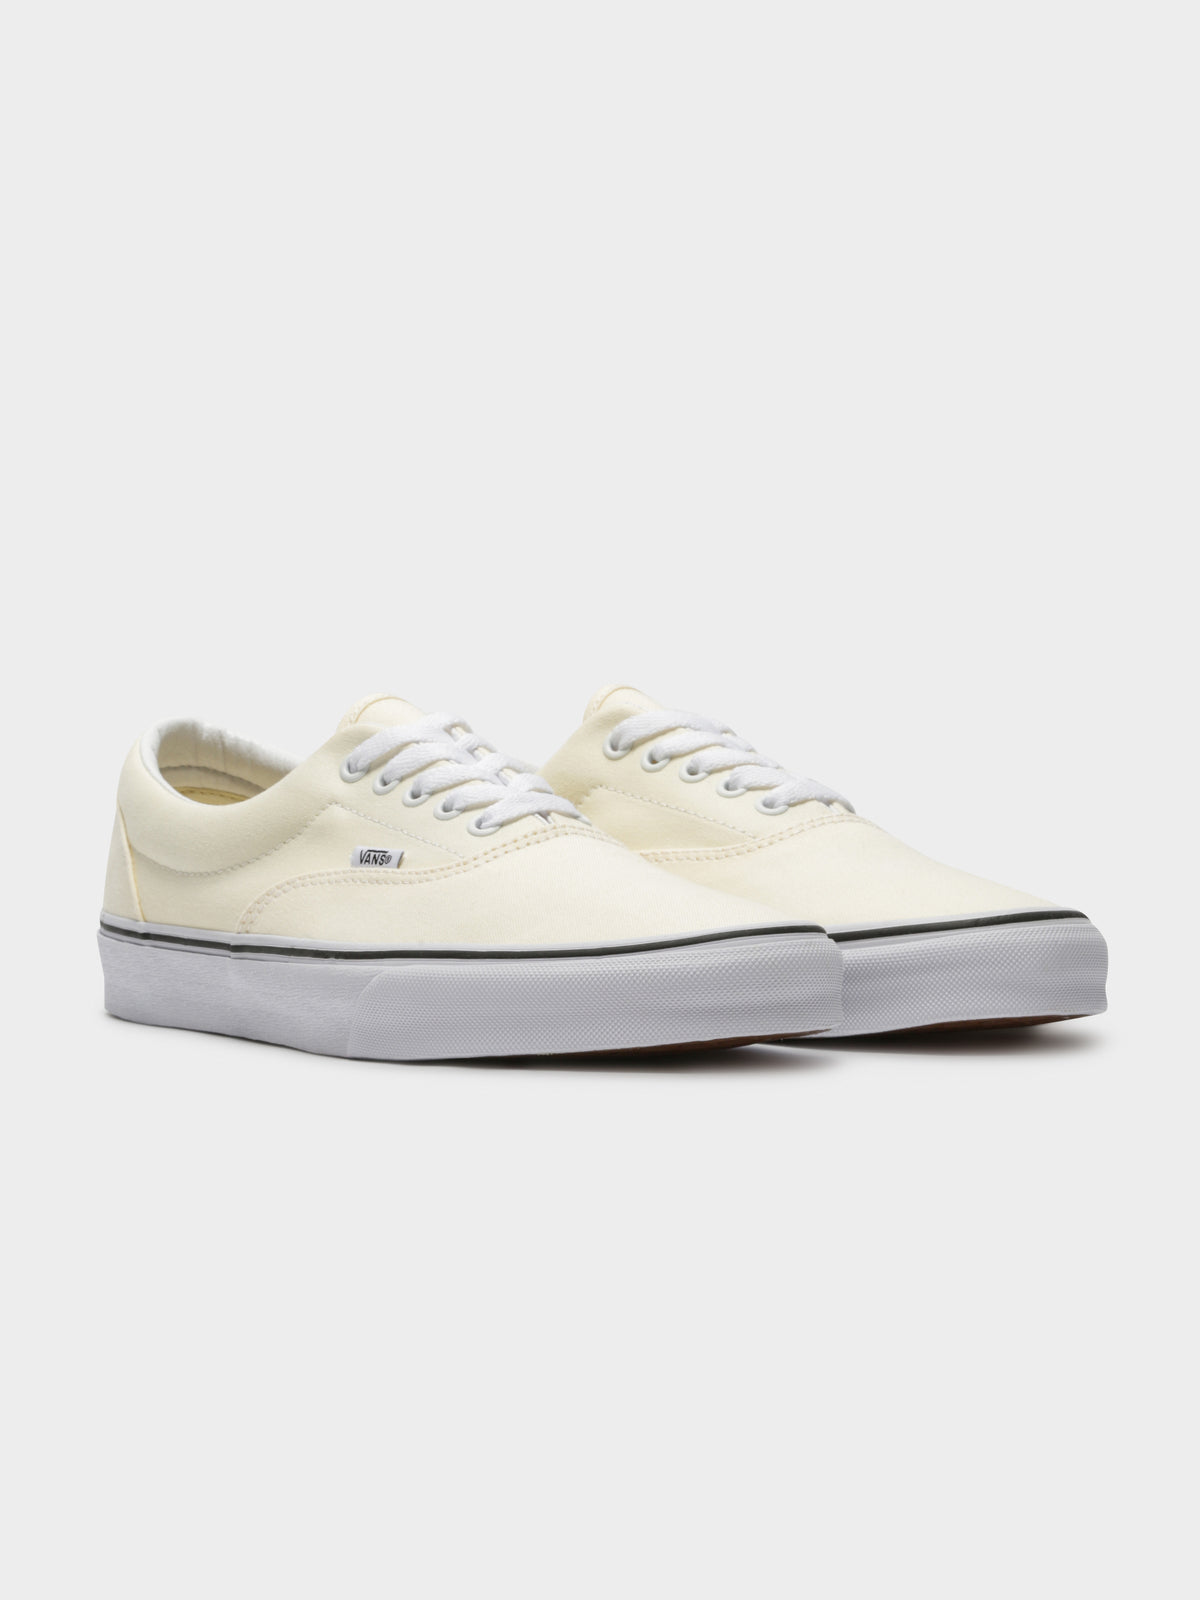 Mens Era Sneakers in Off White